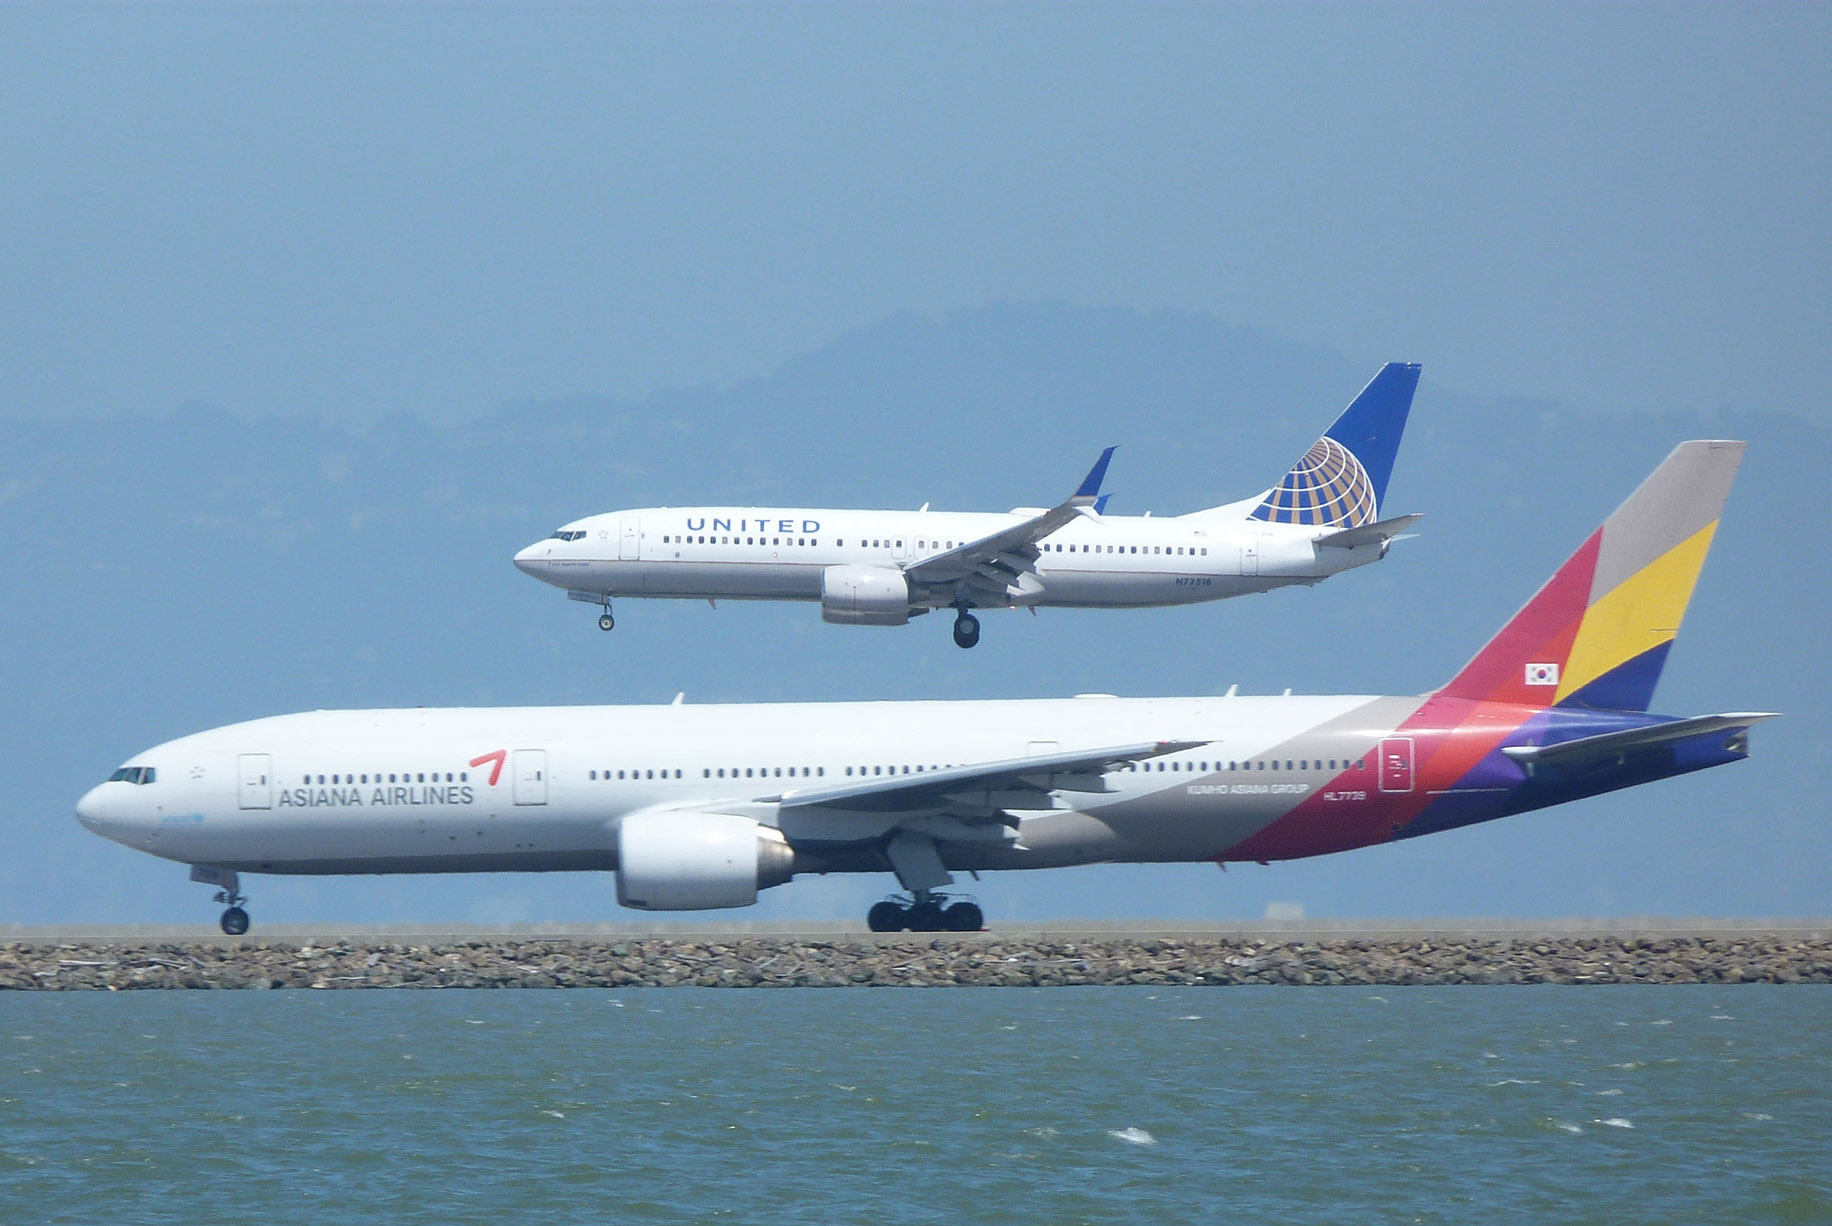 American, Delta And United Are World's Most Valuable Airline Brands